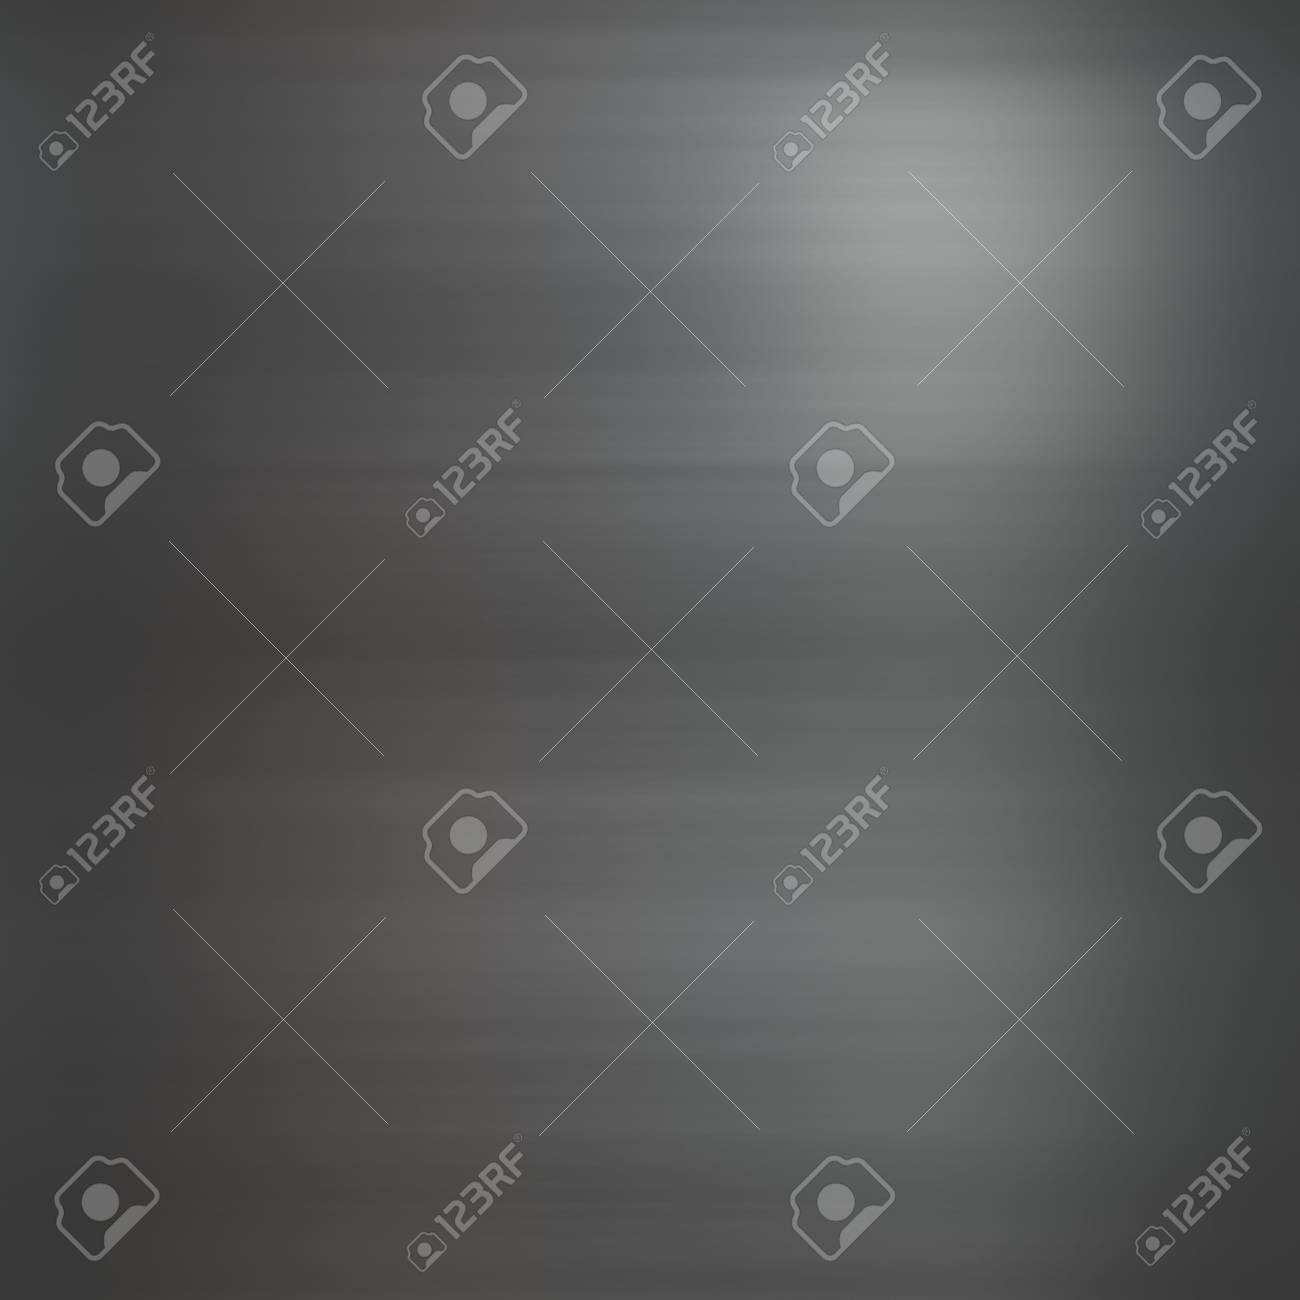 Brushed smooth glossy metal surface texture background illustration Stock Illustration - 3392858